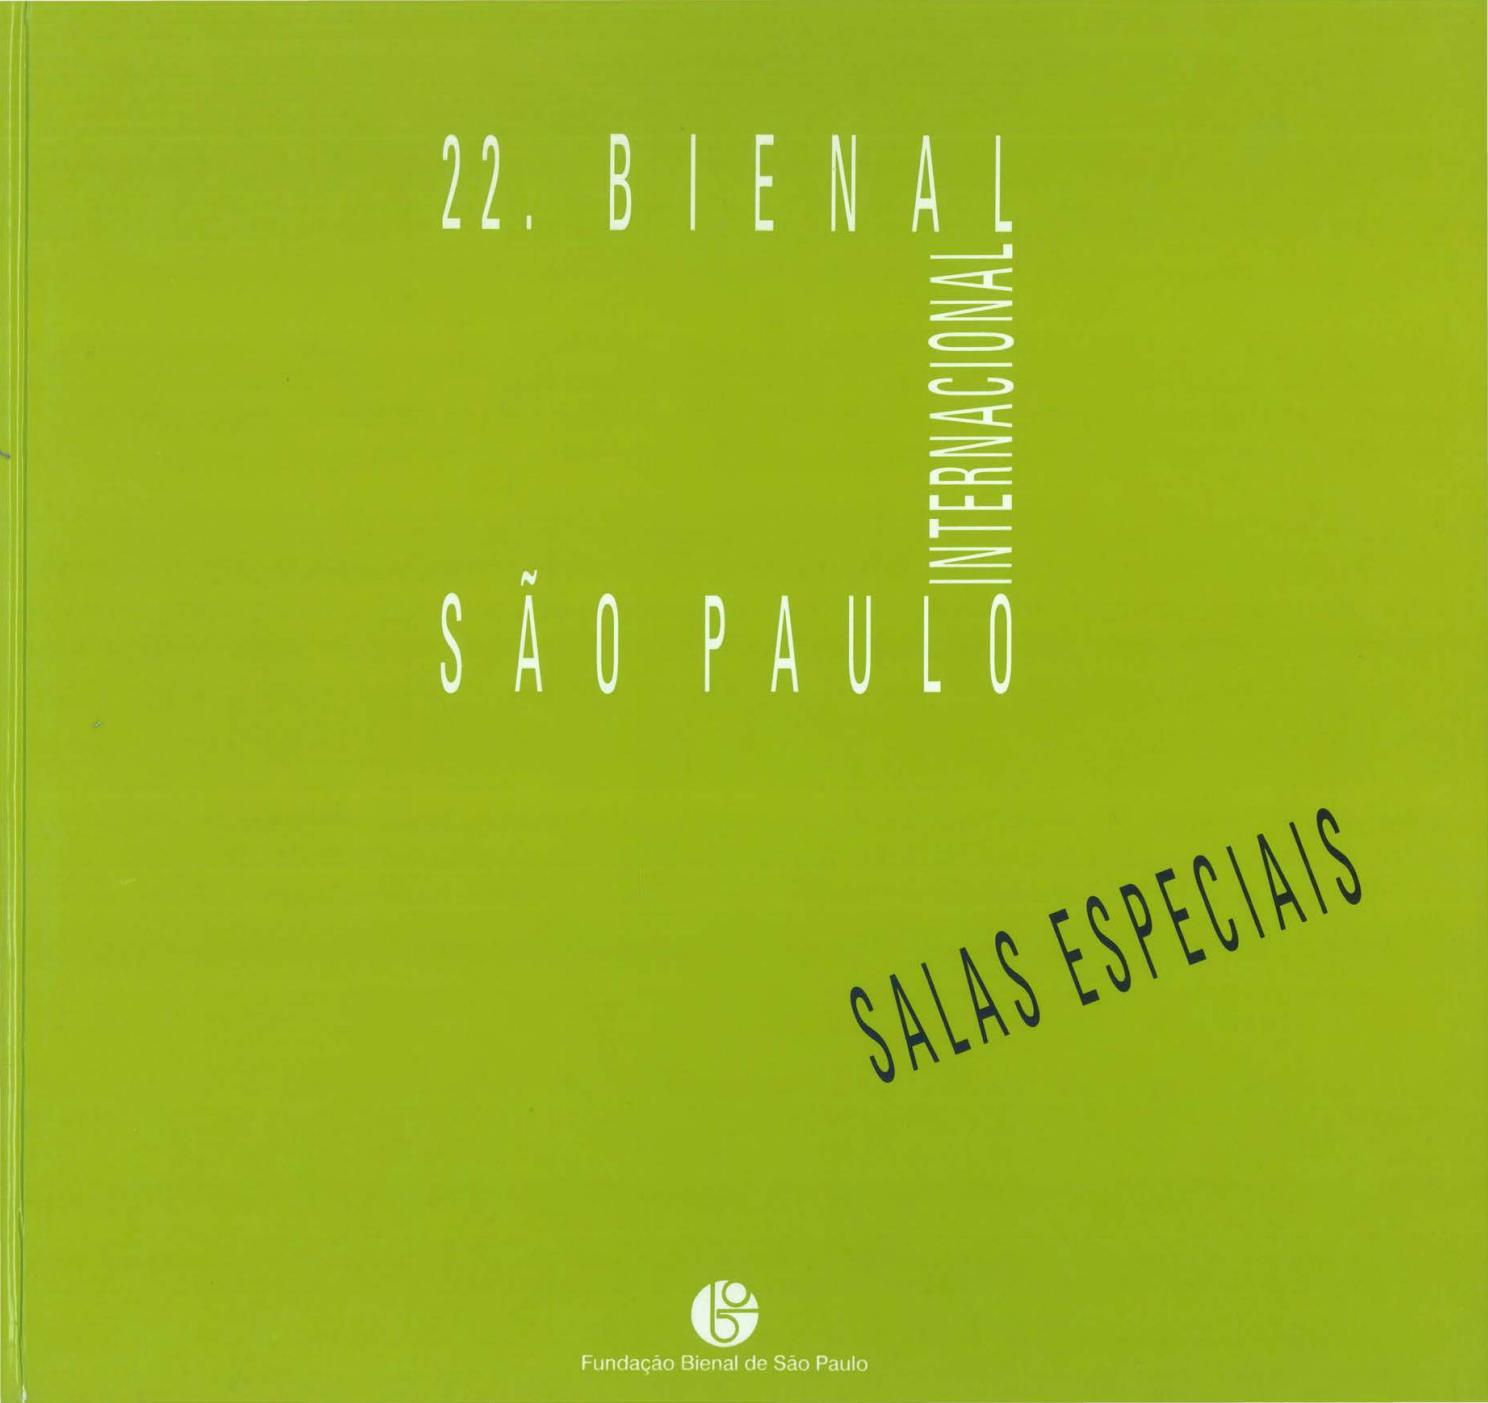 22ª Bienal De São Paulo (1994) – Salas Especiais / Special Within Most Popular Blended Fabric Freedom Verse Tapestries And Wall Hangings (View 18 of 21)